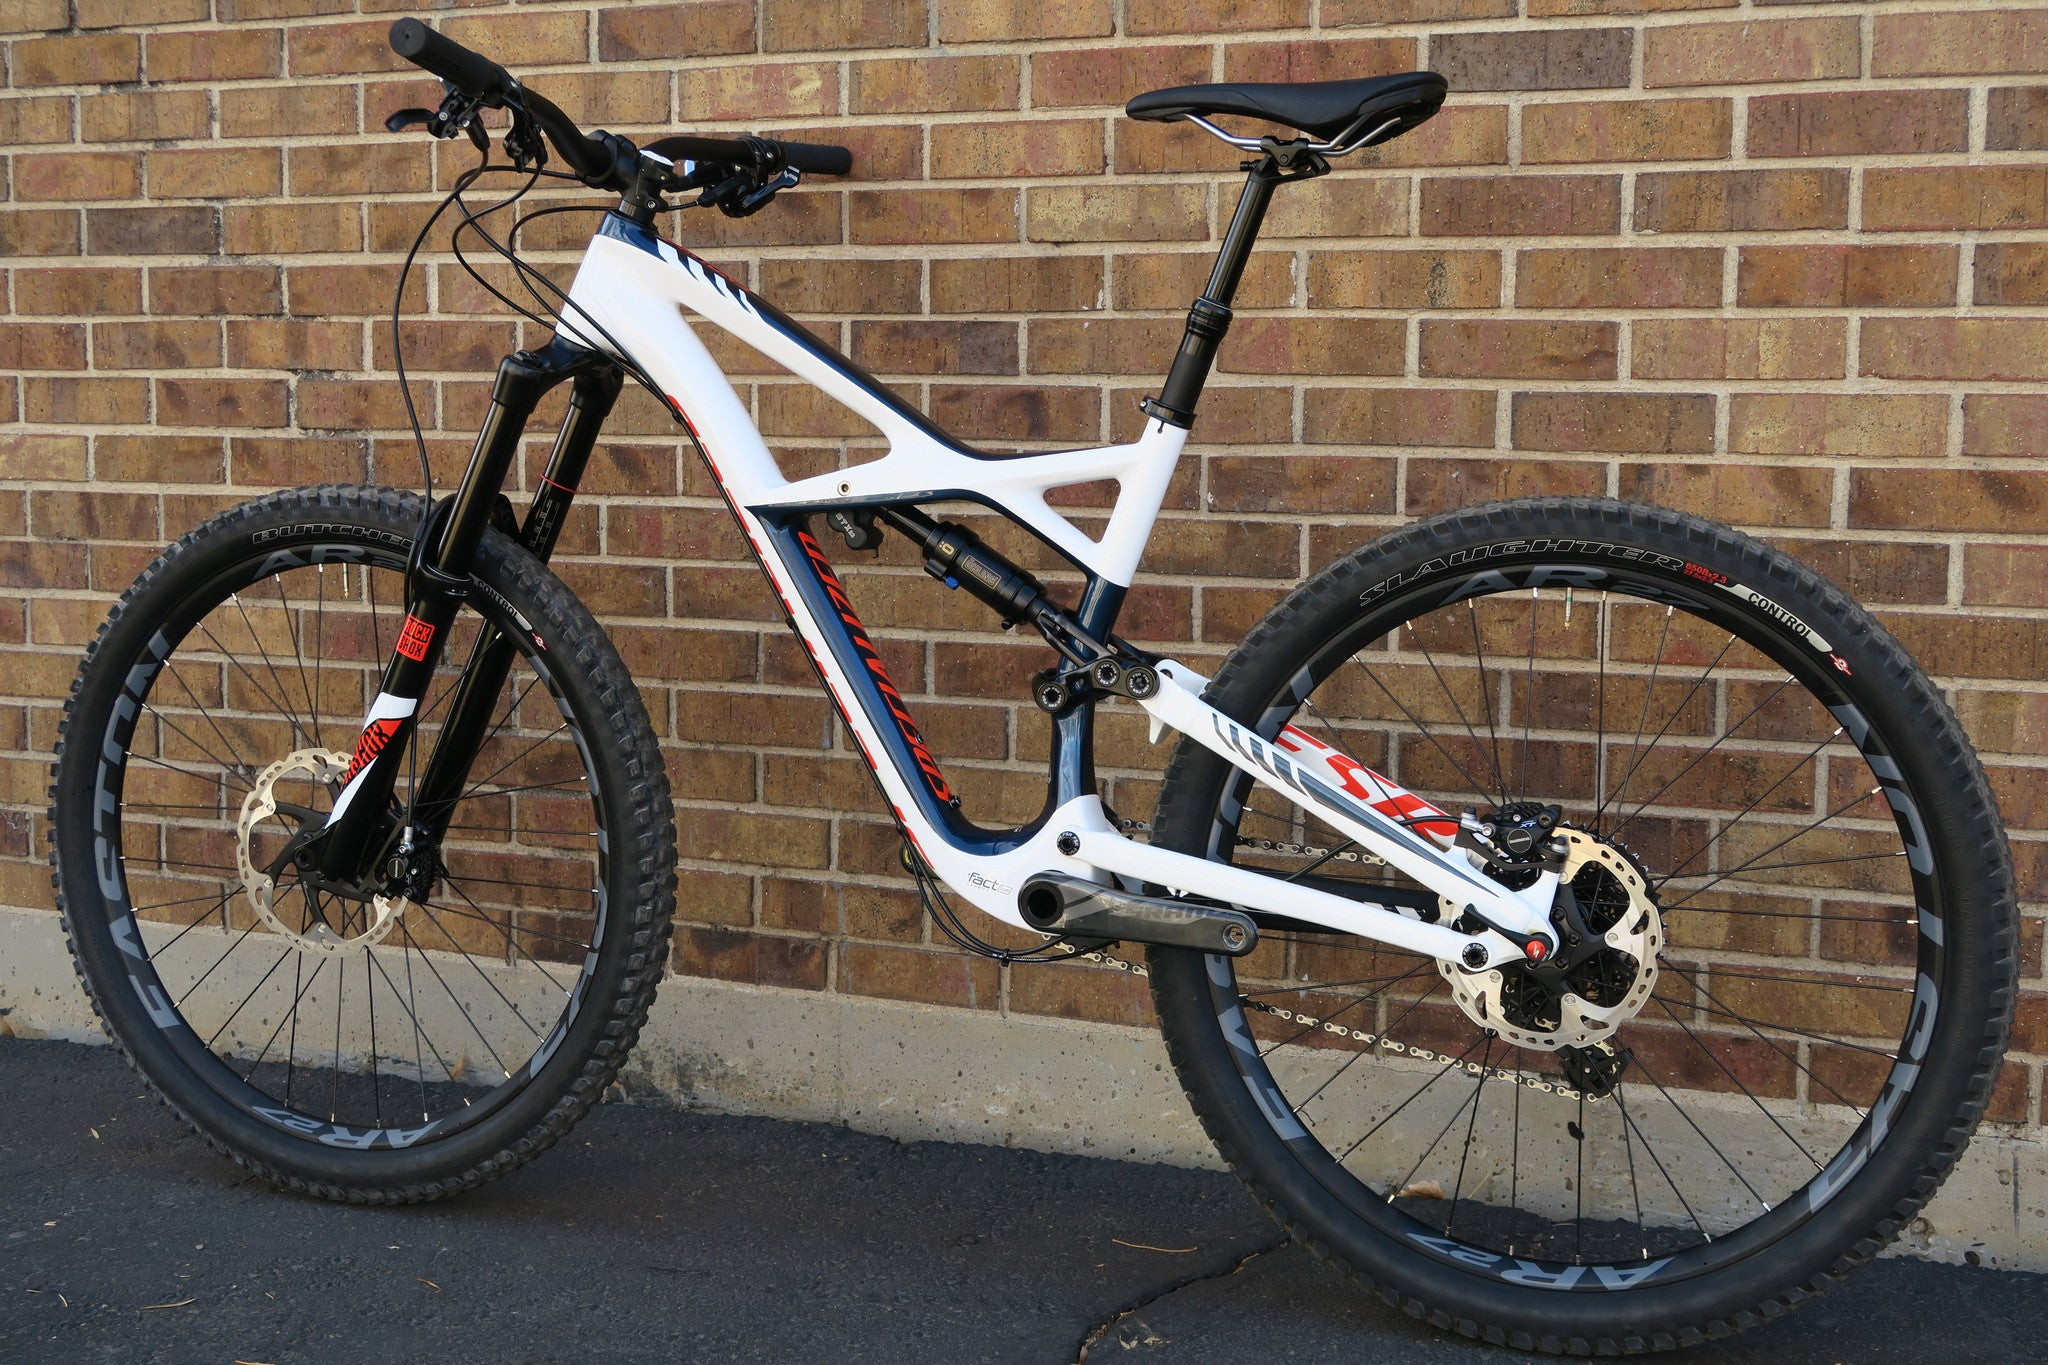 2016 SPECIALIZED ENDURO EXPERT CARBON 650B